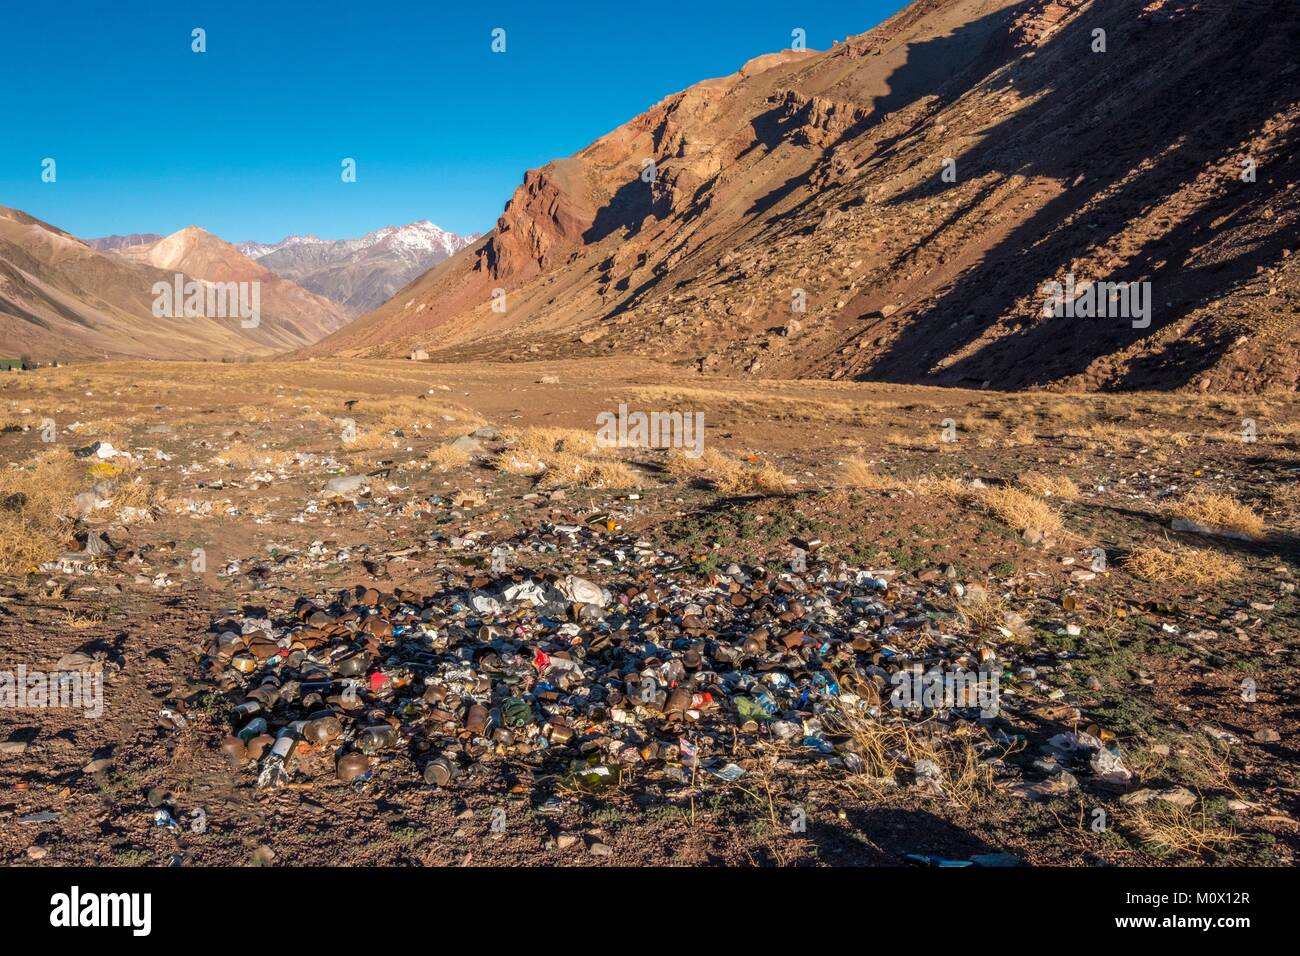 Argentina,Mendoza province,pollution in Aconcagua Pronvicial Park,garbage dump - Stock Image